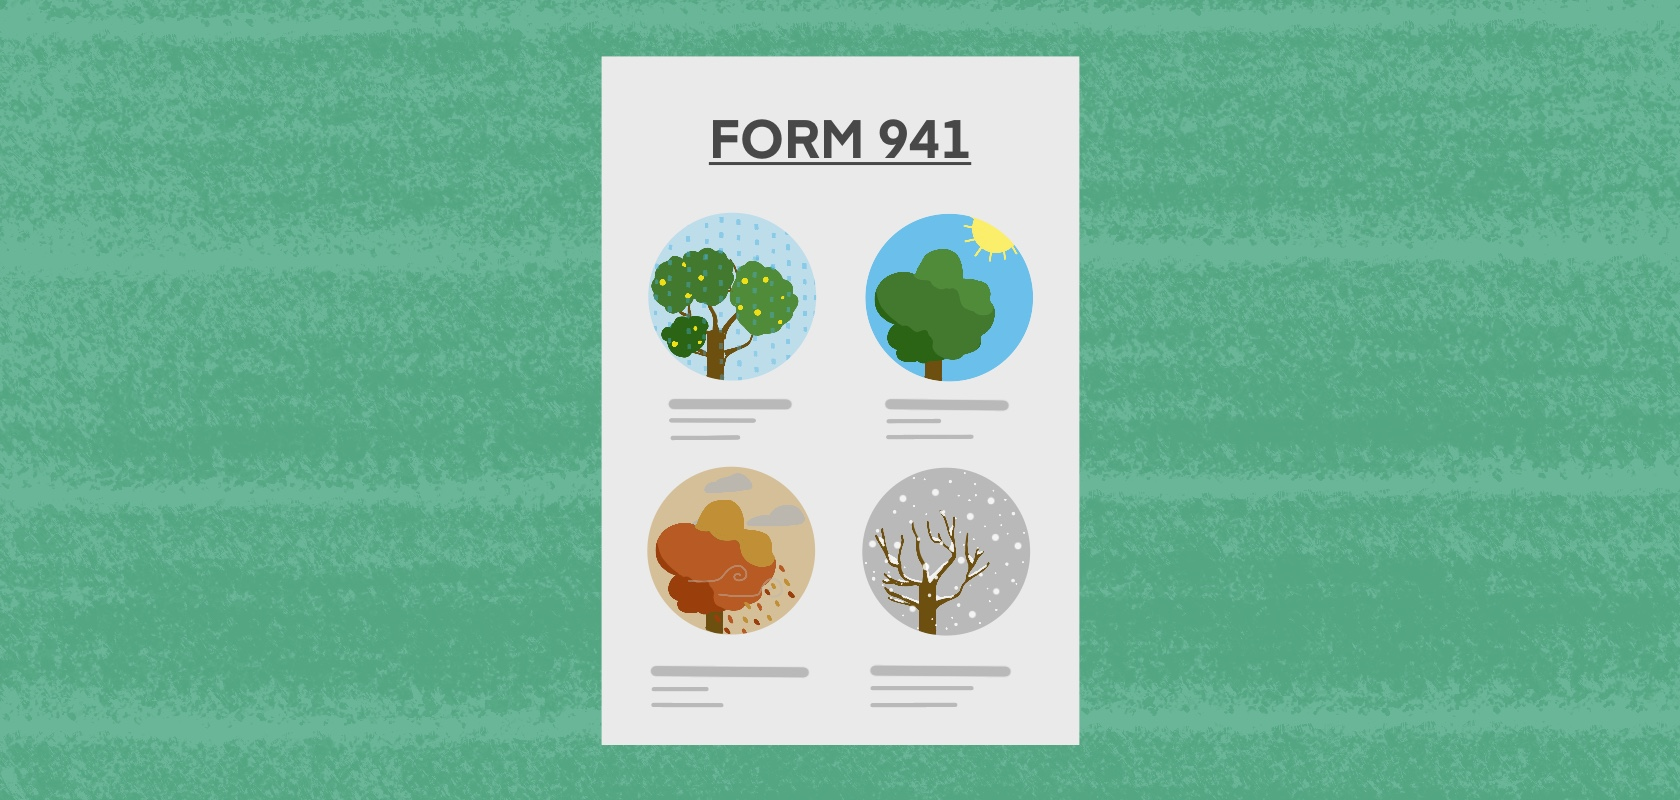 wagepoint what is form 941 example of form 941